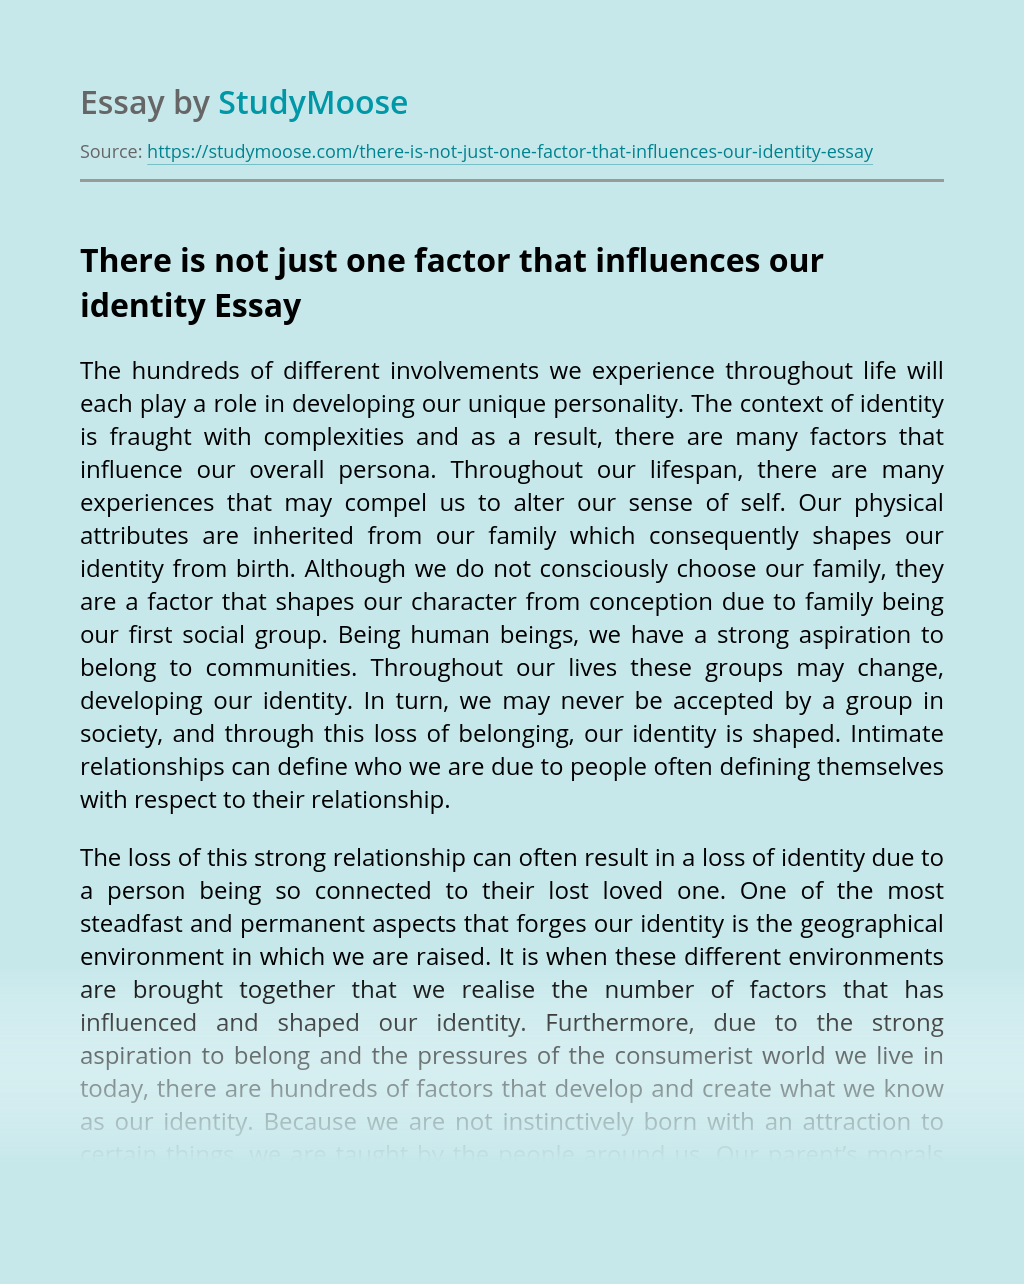 There is not just one factor that influences our identity